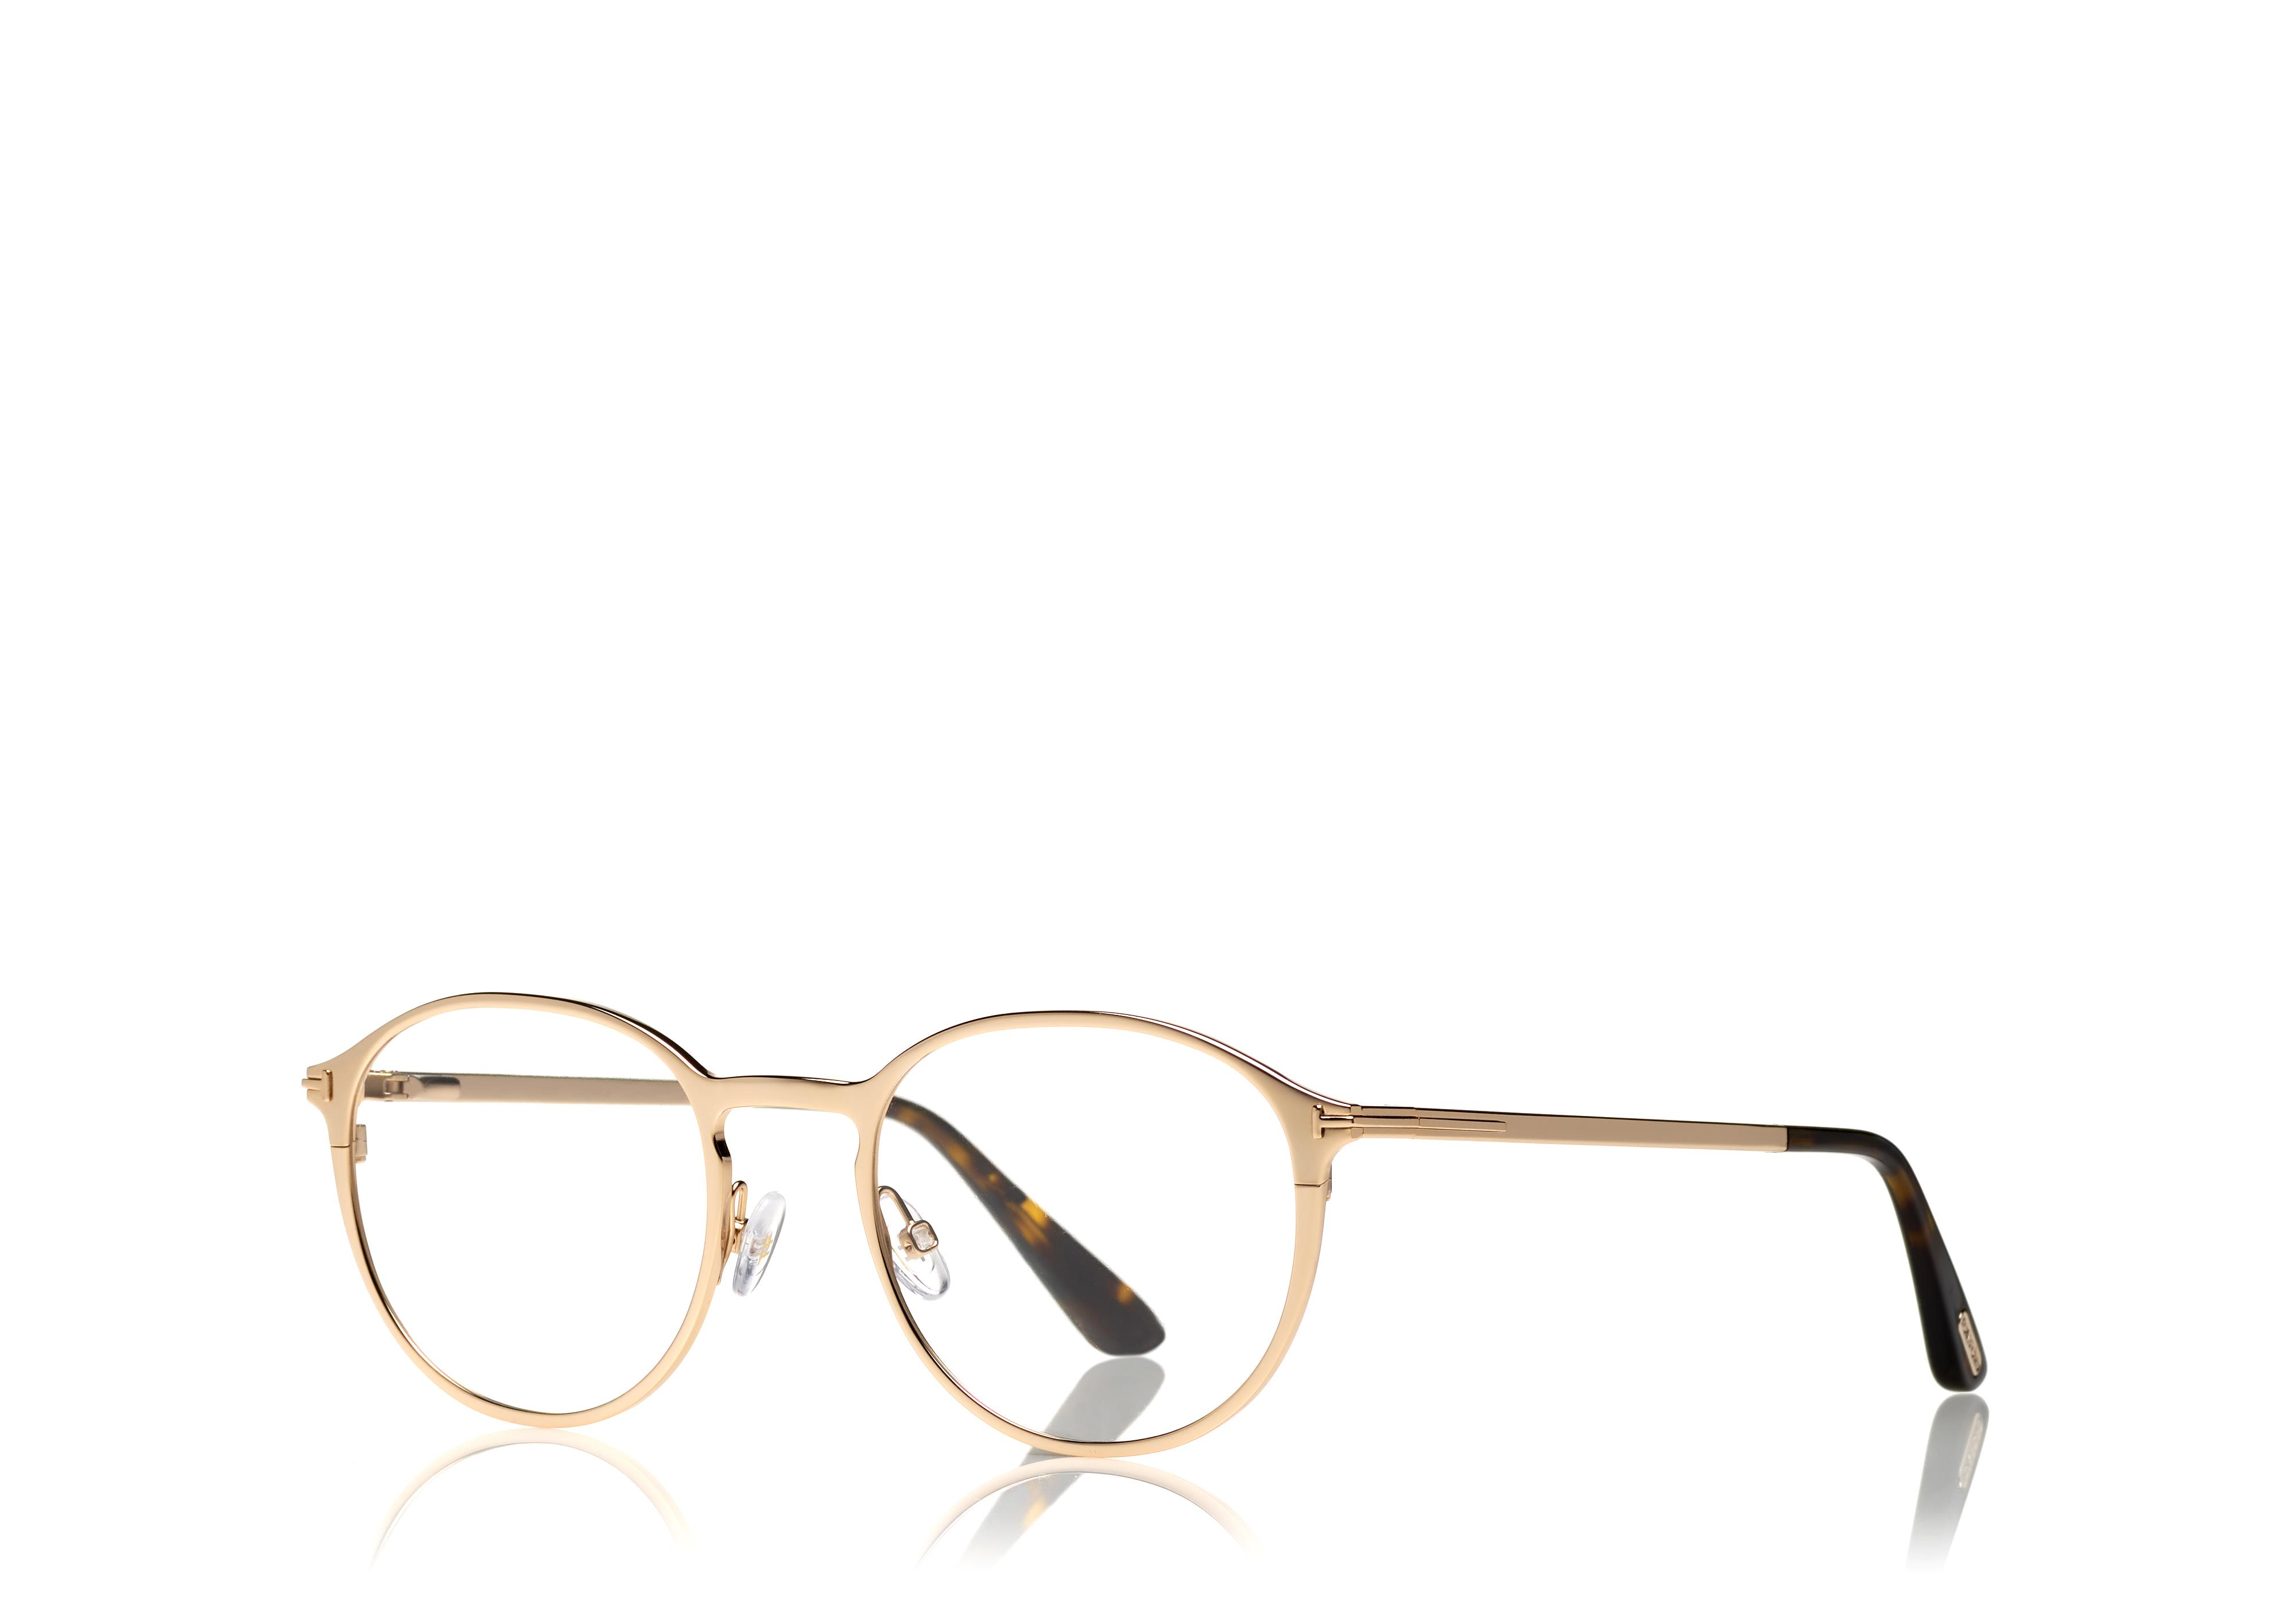 SOFT ROUNDED OPTICAL FRAME WITH MAGNETIC CLIP E thumbnail